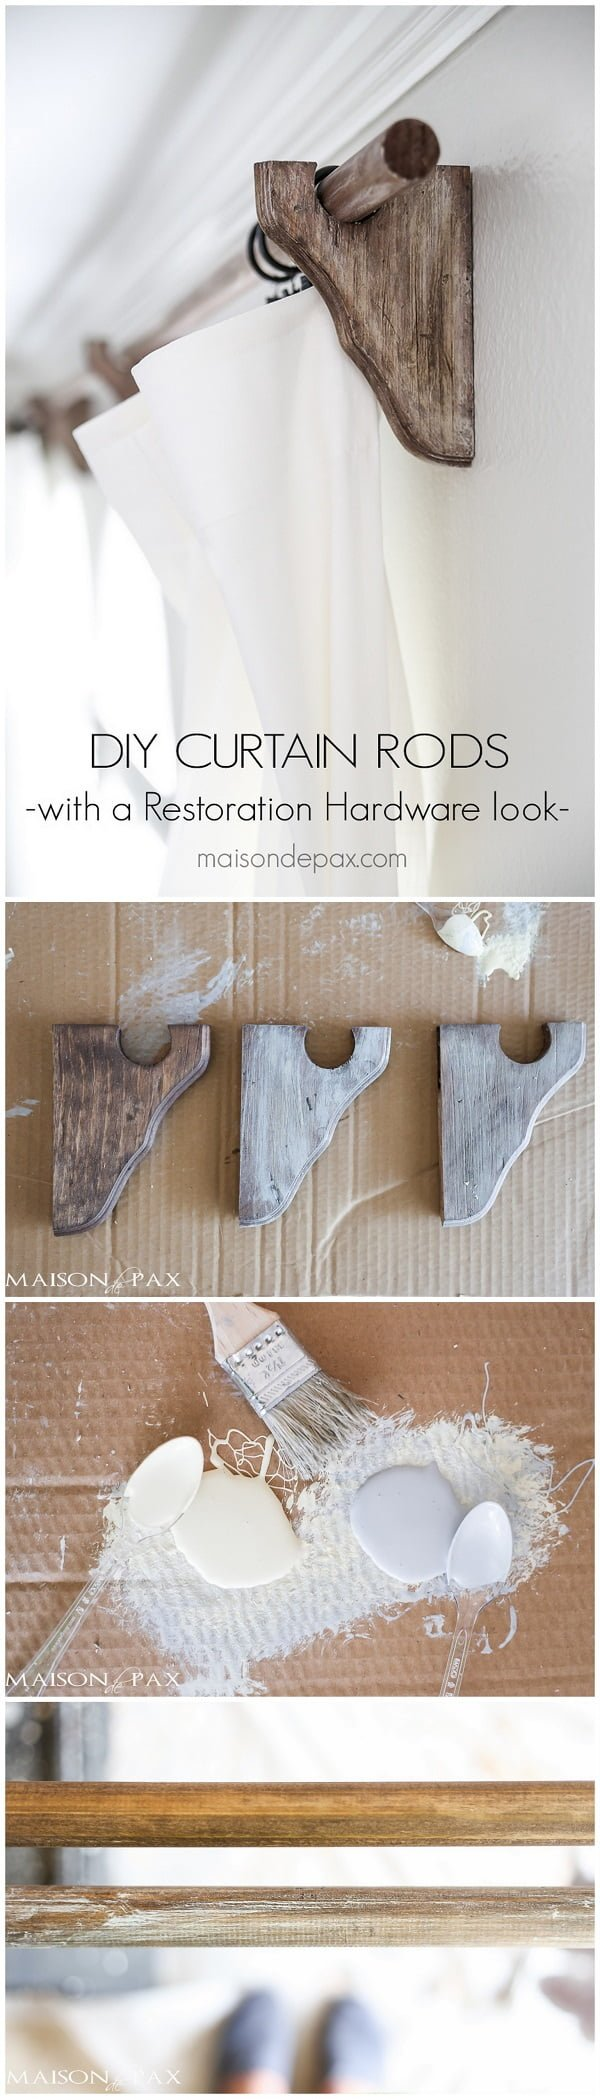 How to make your own #DIY #farmhouse style curtain rods #woodworking #homedecor